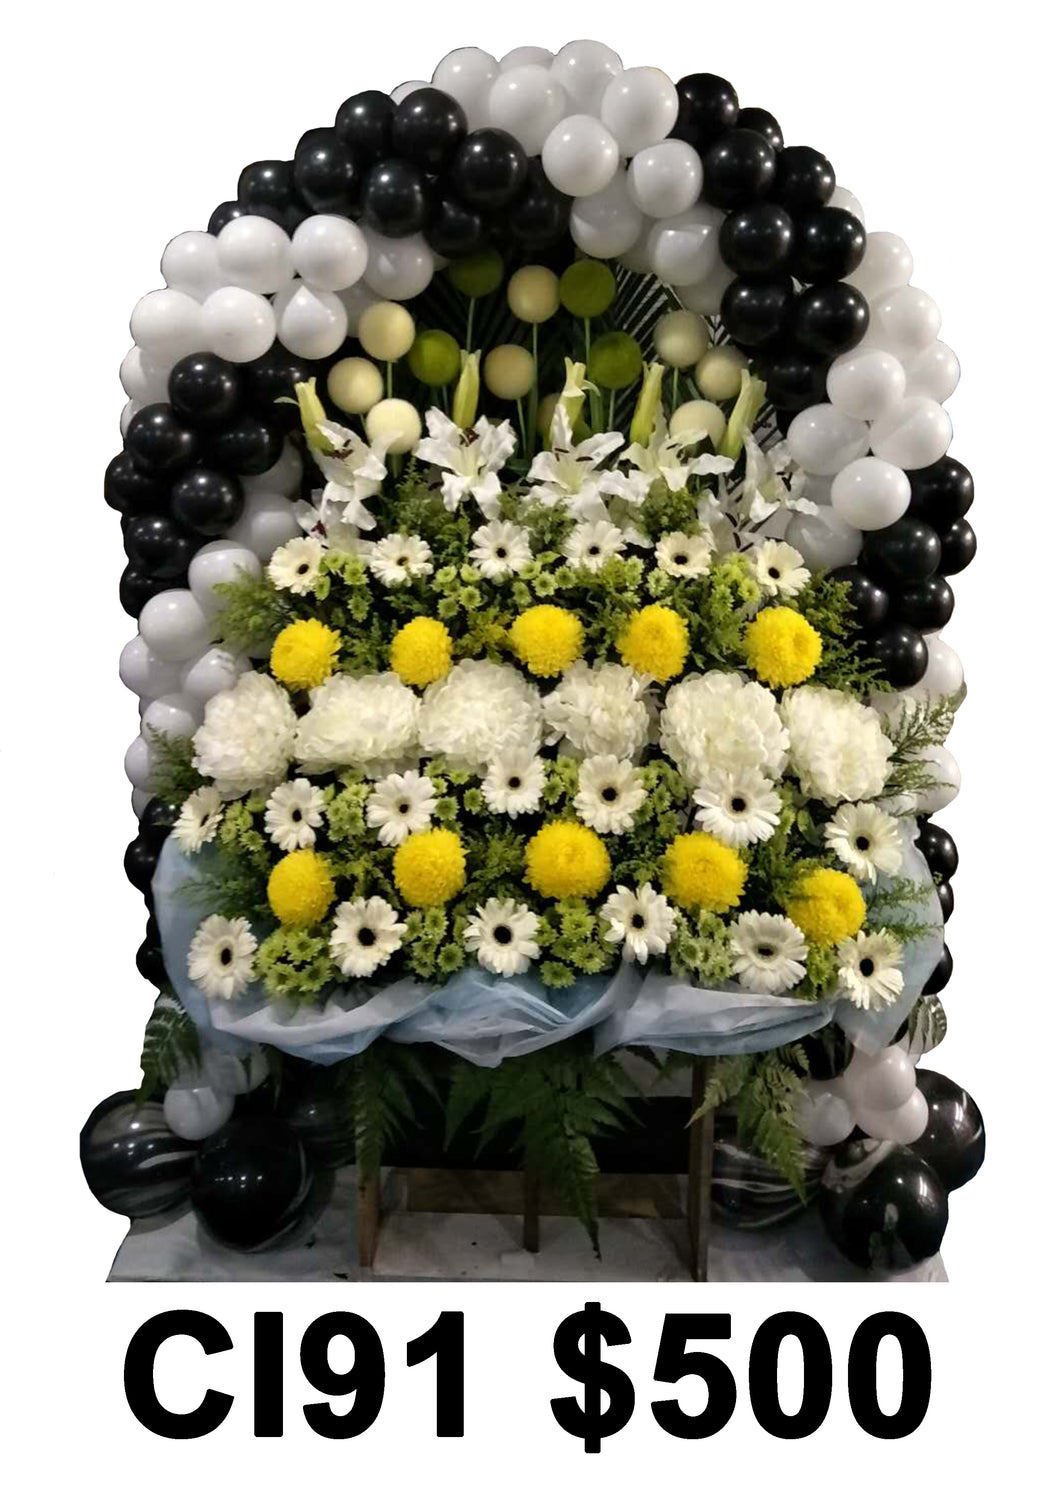 Condolence Wreath CI91